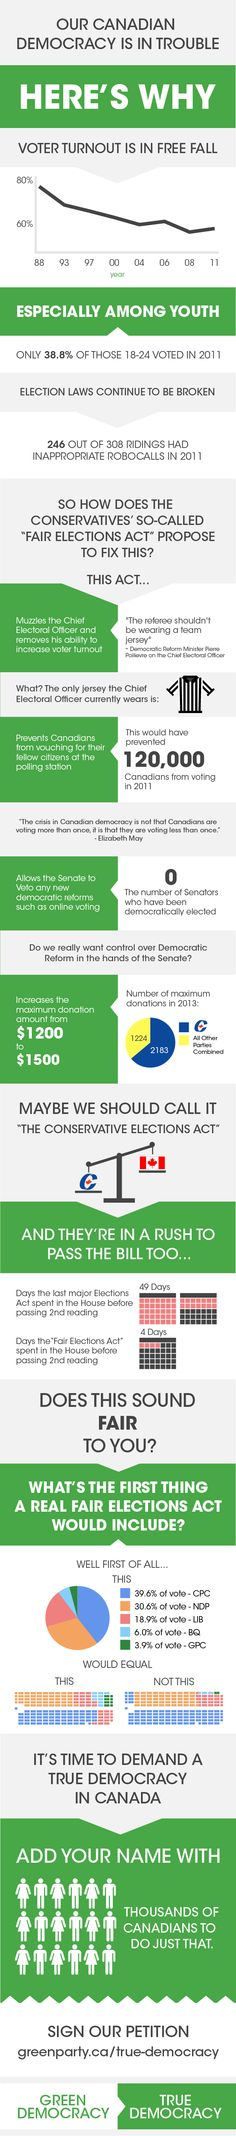 Demand a True Democracy in Canada NOT the One Harper Wants www.greenparty.ca/true-democracy #Canada #politics #infographic